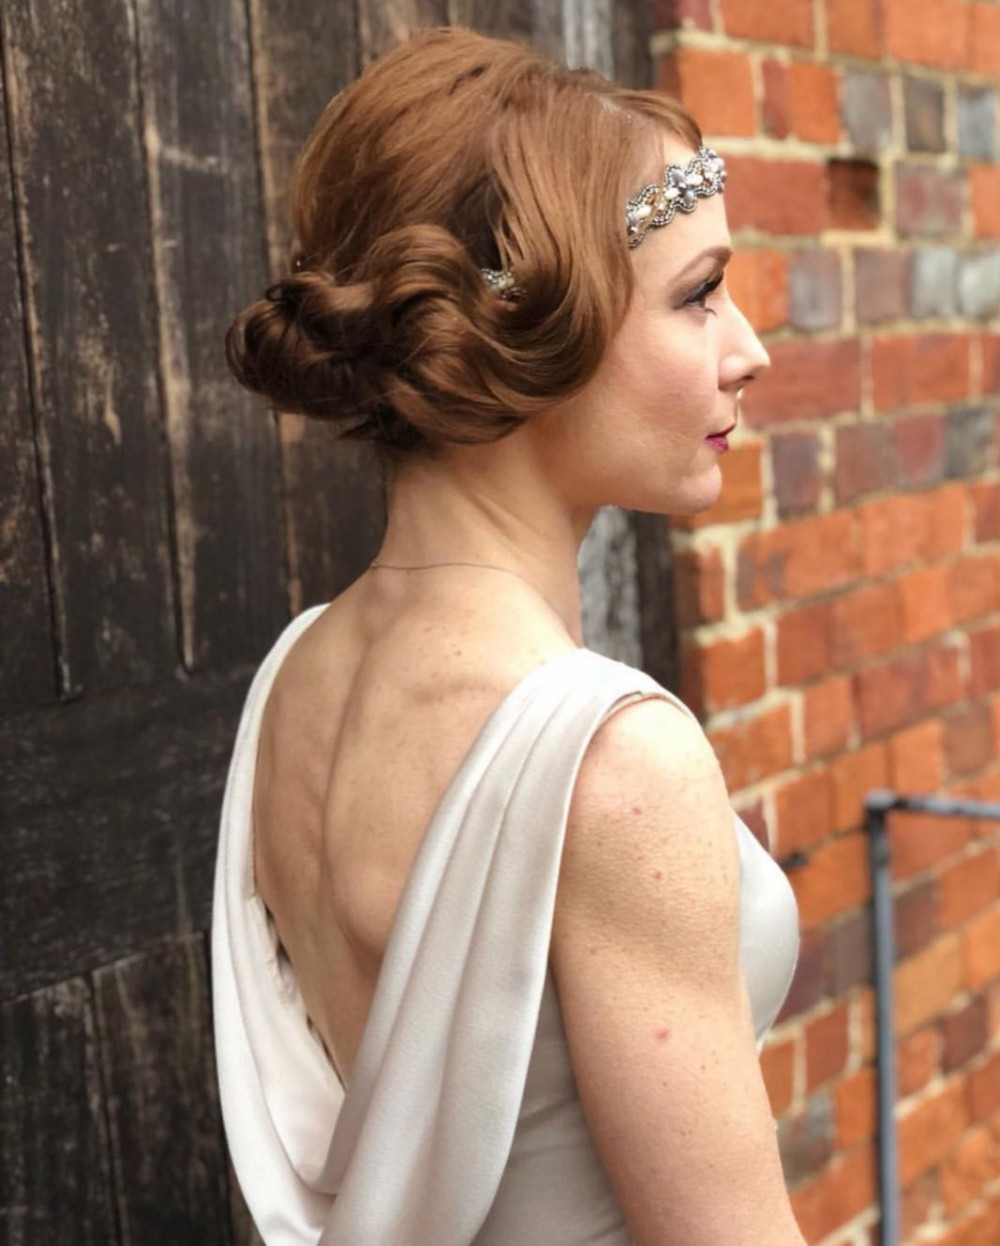 I absolutley loved creating this simply stunning 1920s look on this beautiful bride. - Make Me Bridal Artist: Kerry Ingham MUA. #vintage